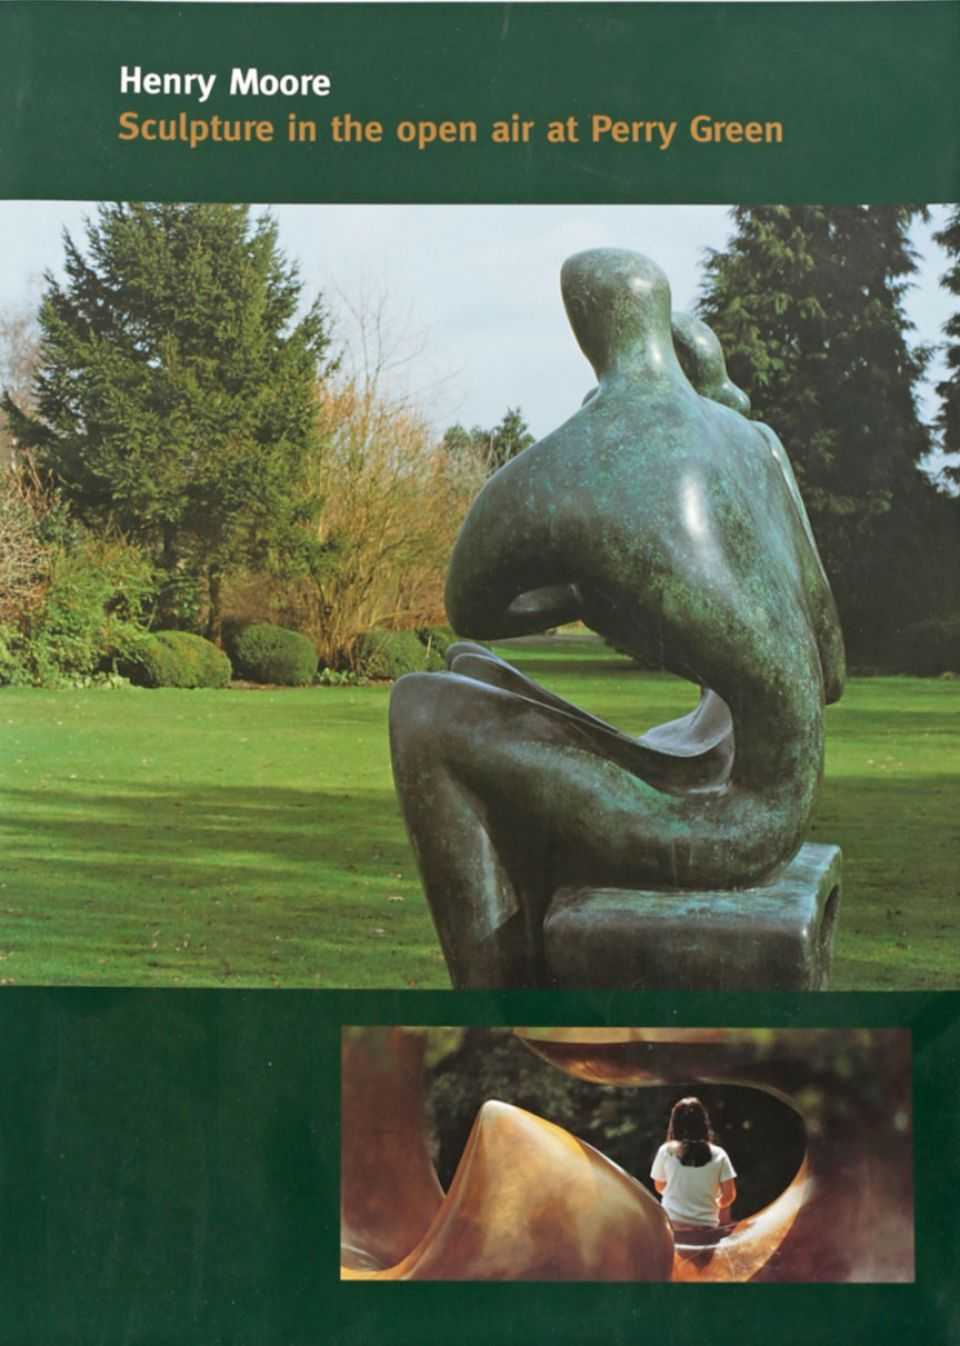 Henry Moore: Sculpture in the Open Air